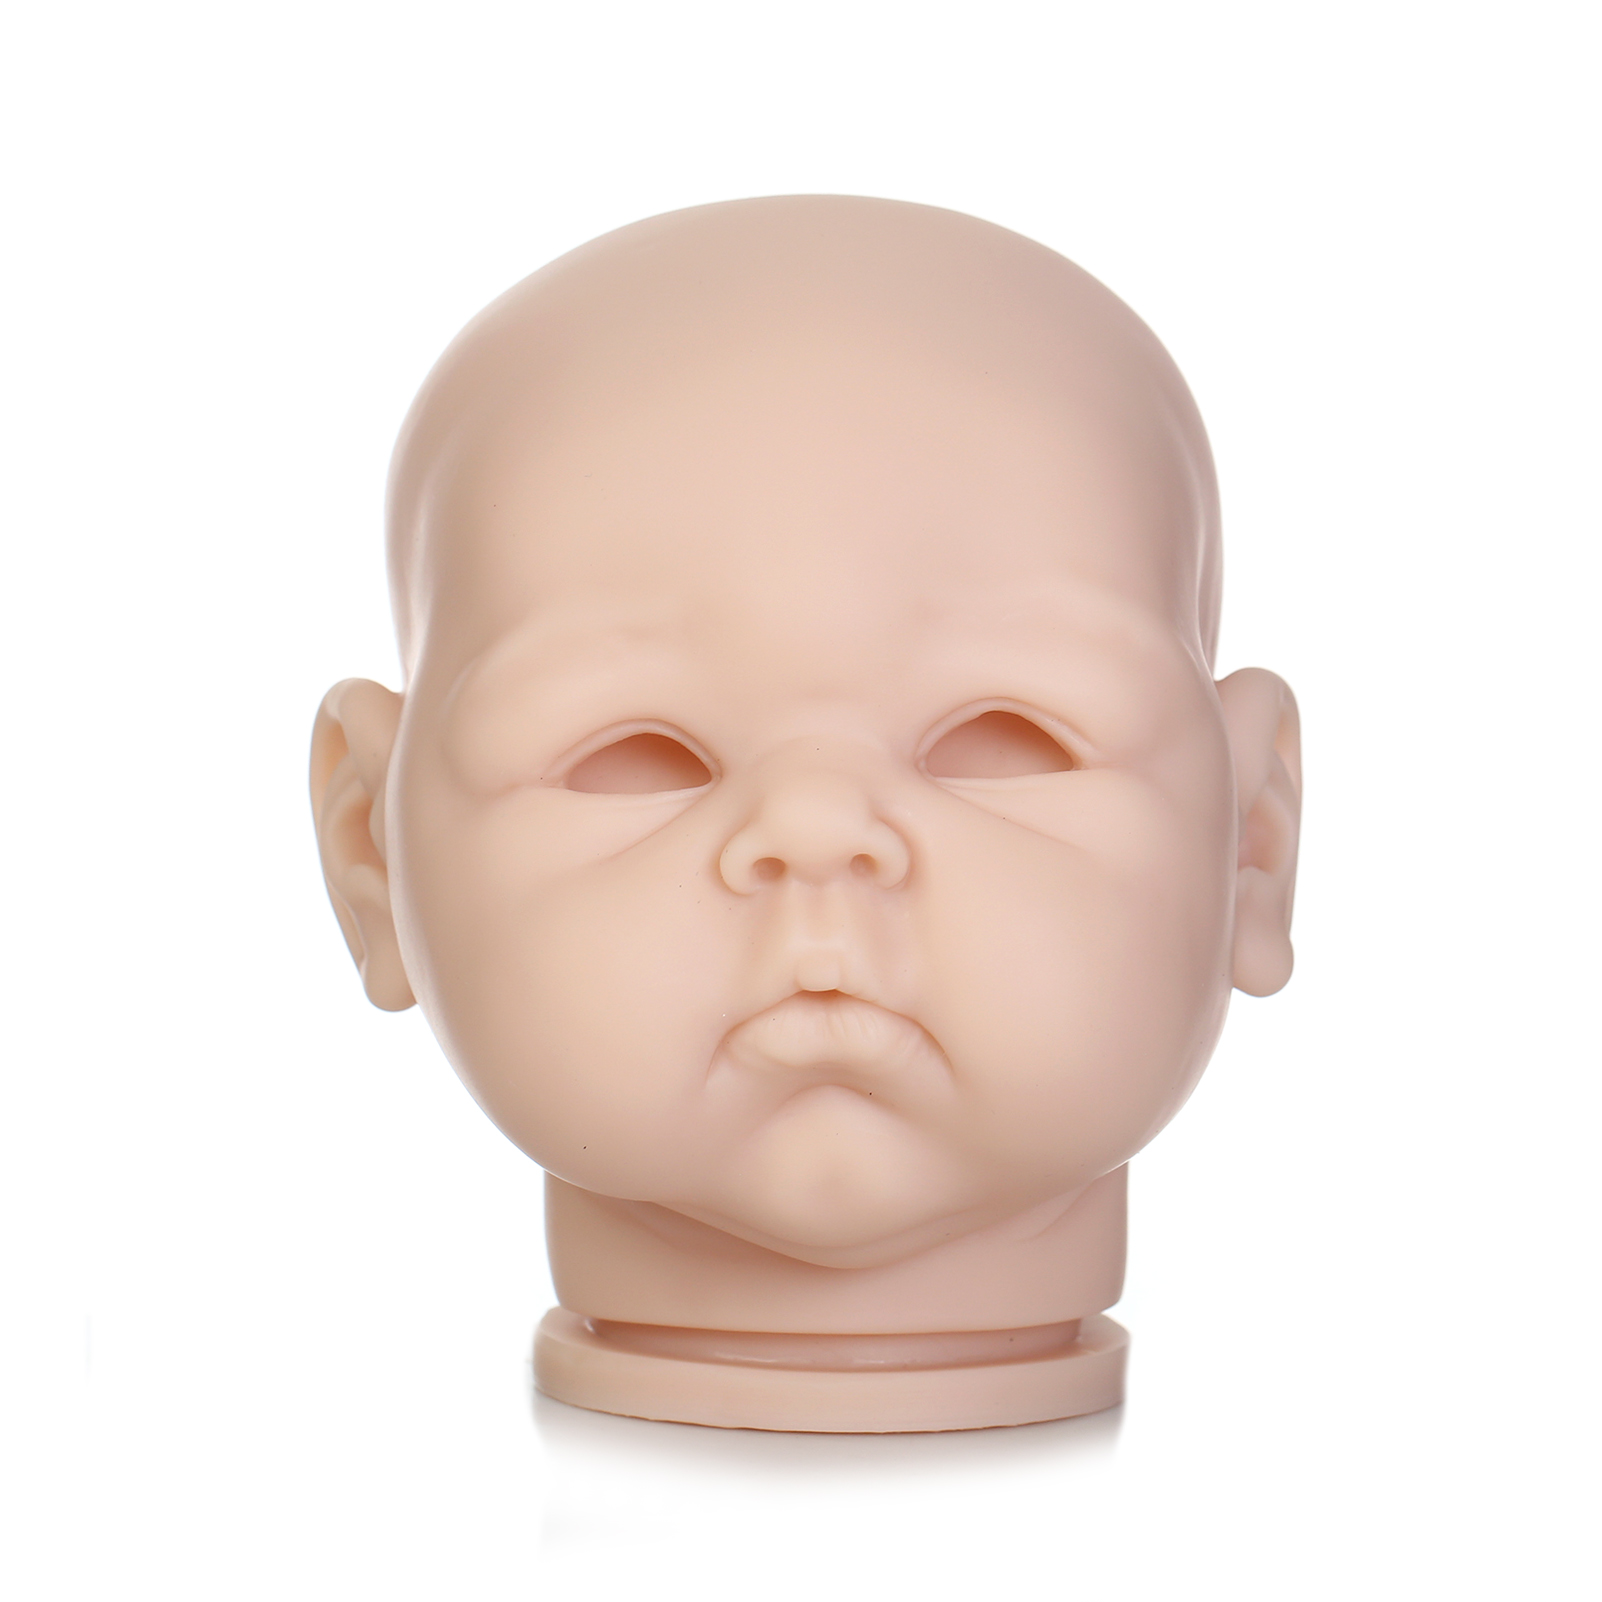 Doll Kit Wholesale Reborn Doll Kit for 22inch Doll Unpainted Doll Parts Realistic Reborn Baby Juguetes